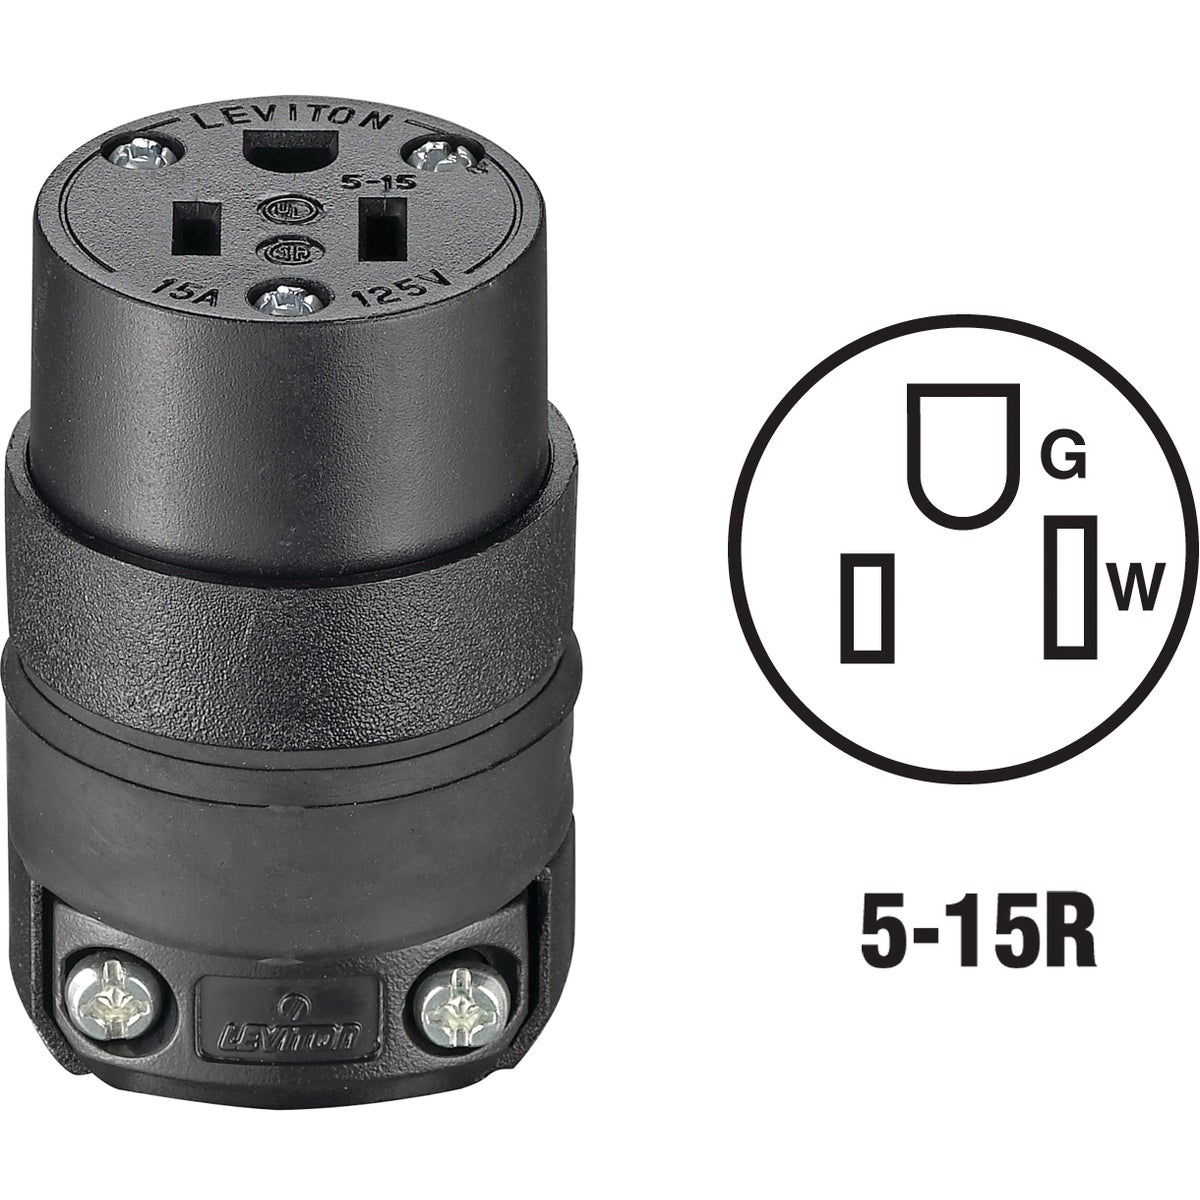 BLK CORD CONNECTOR - 515CR by Leviton Mfg Co